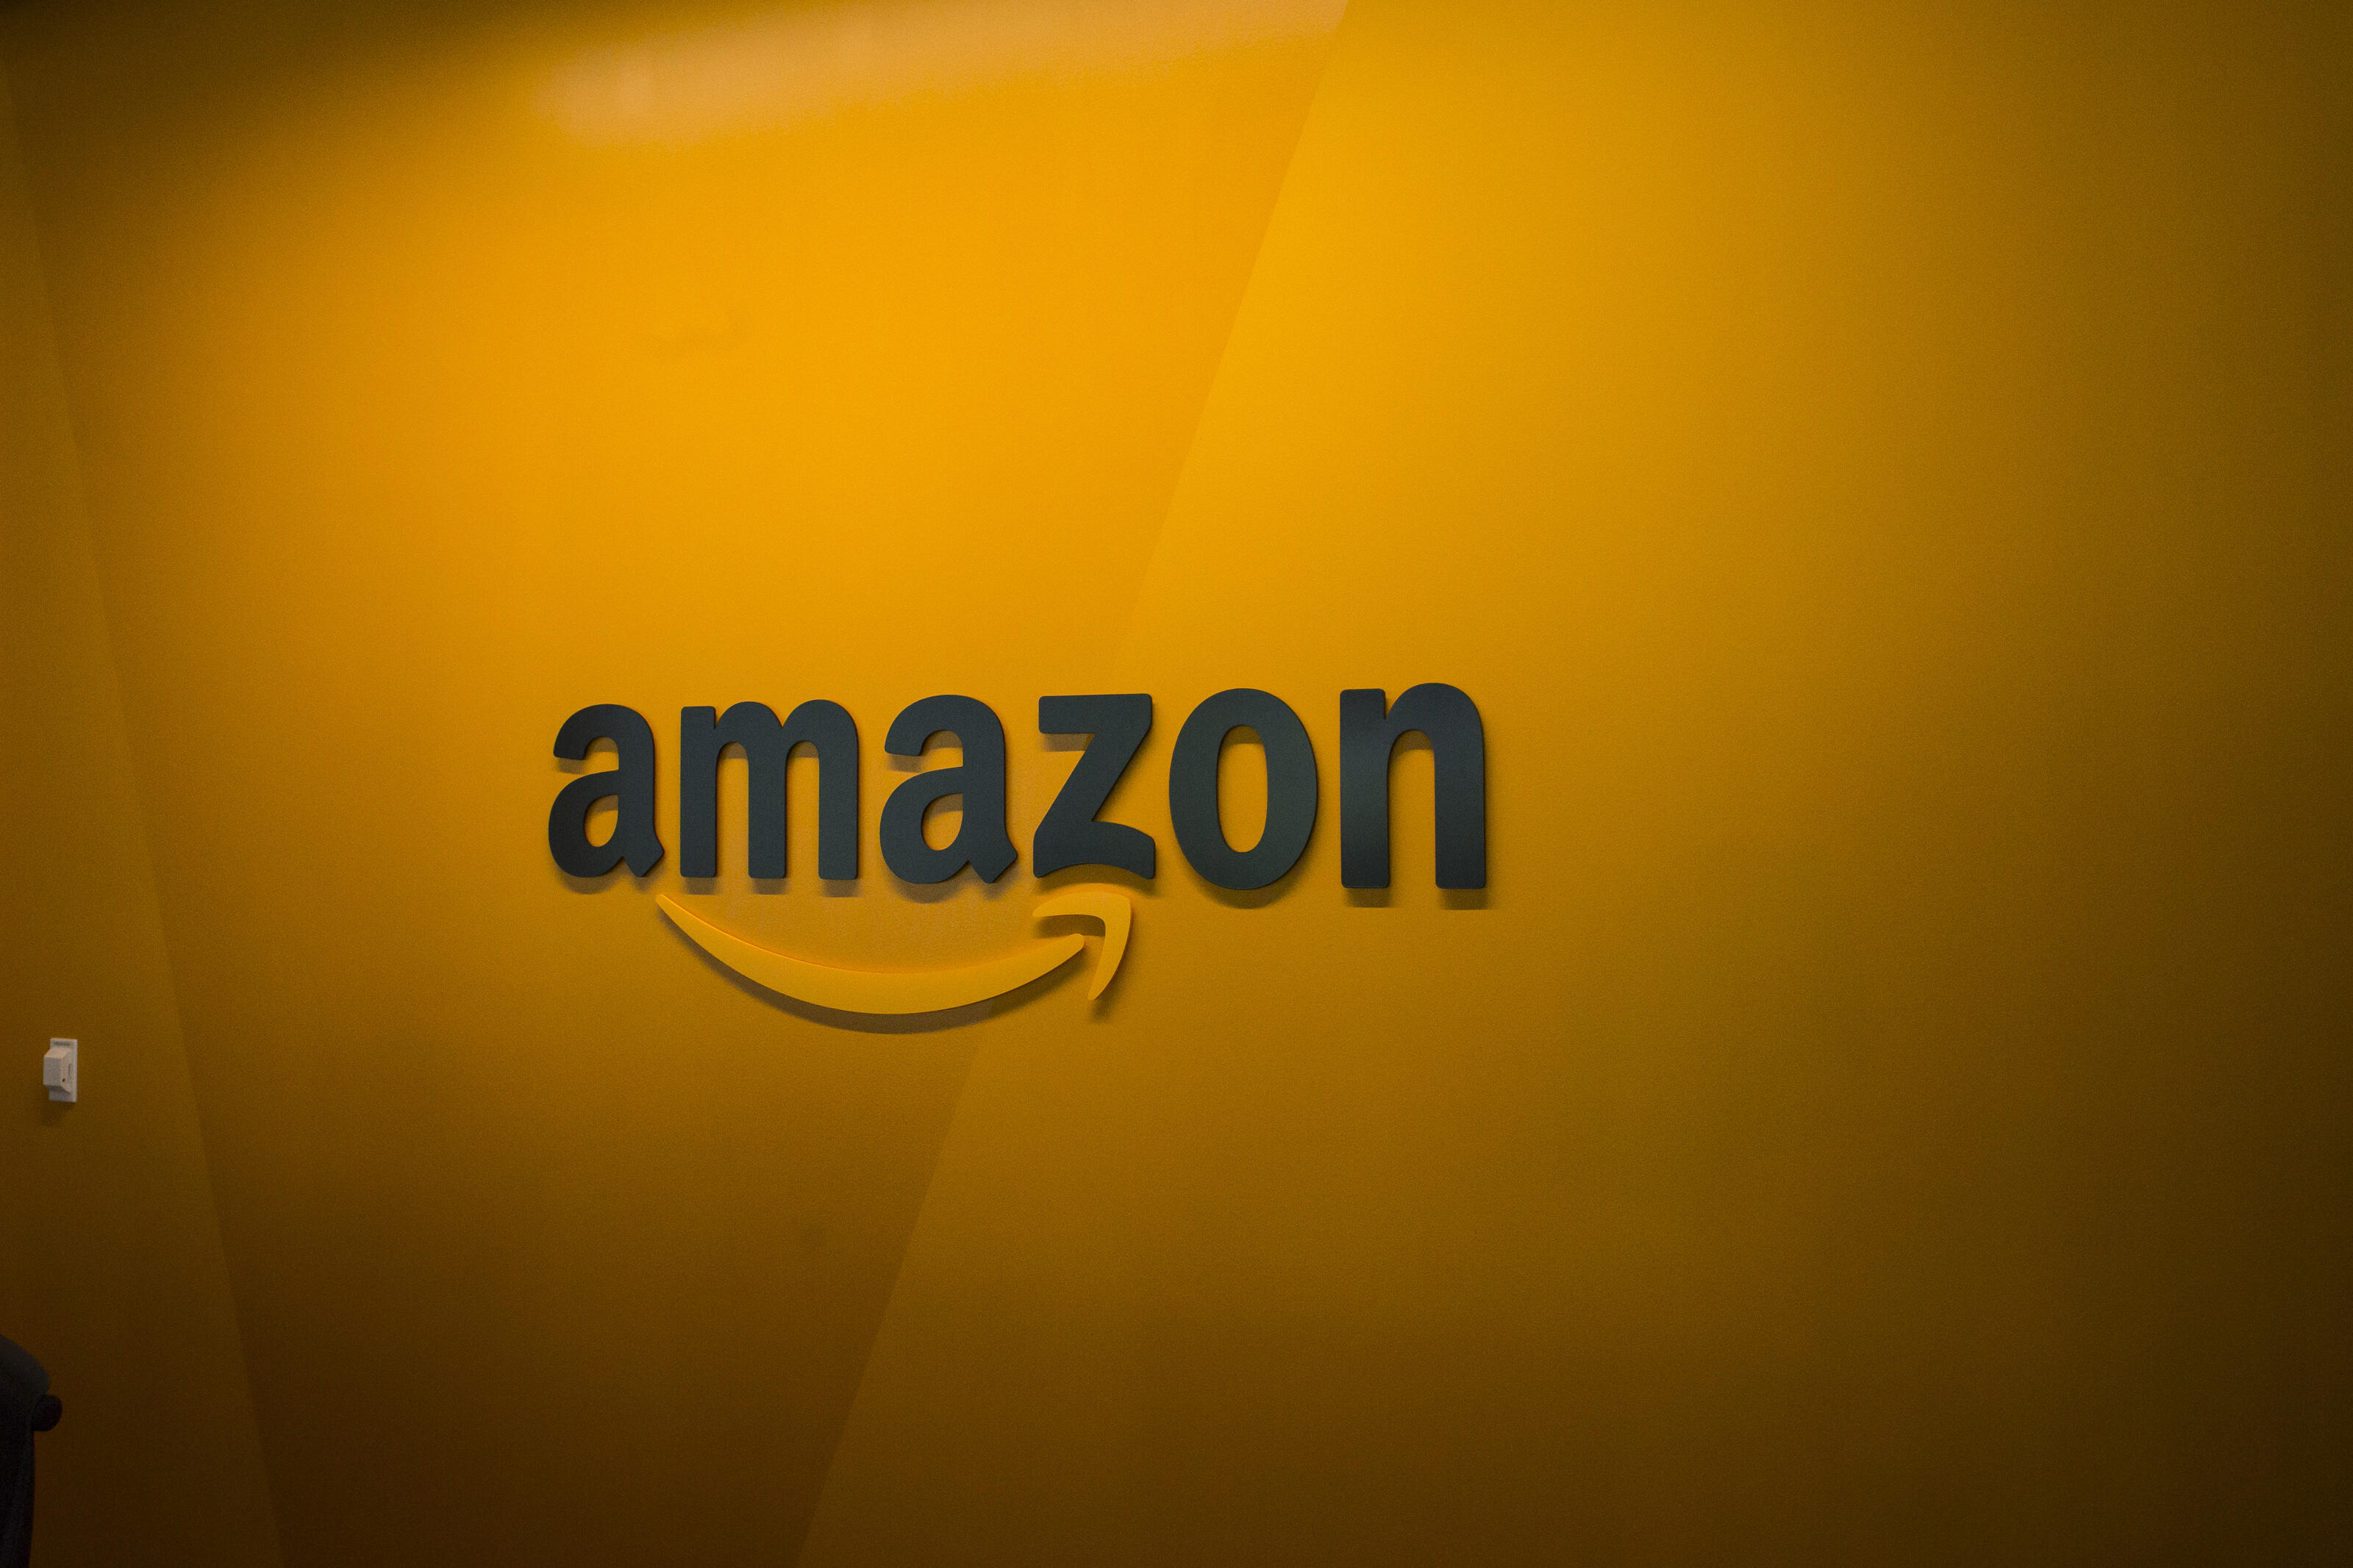 The Amazon logo on an orange wall.